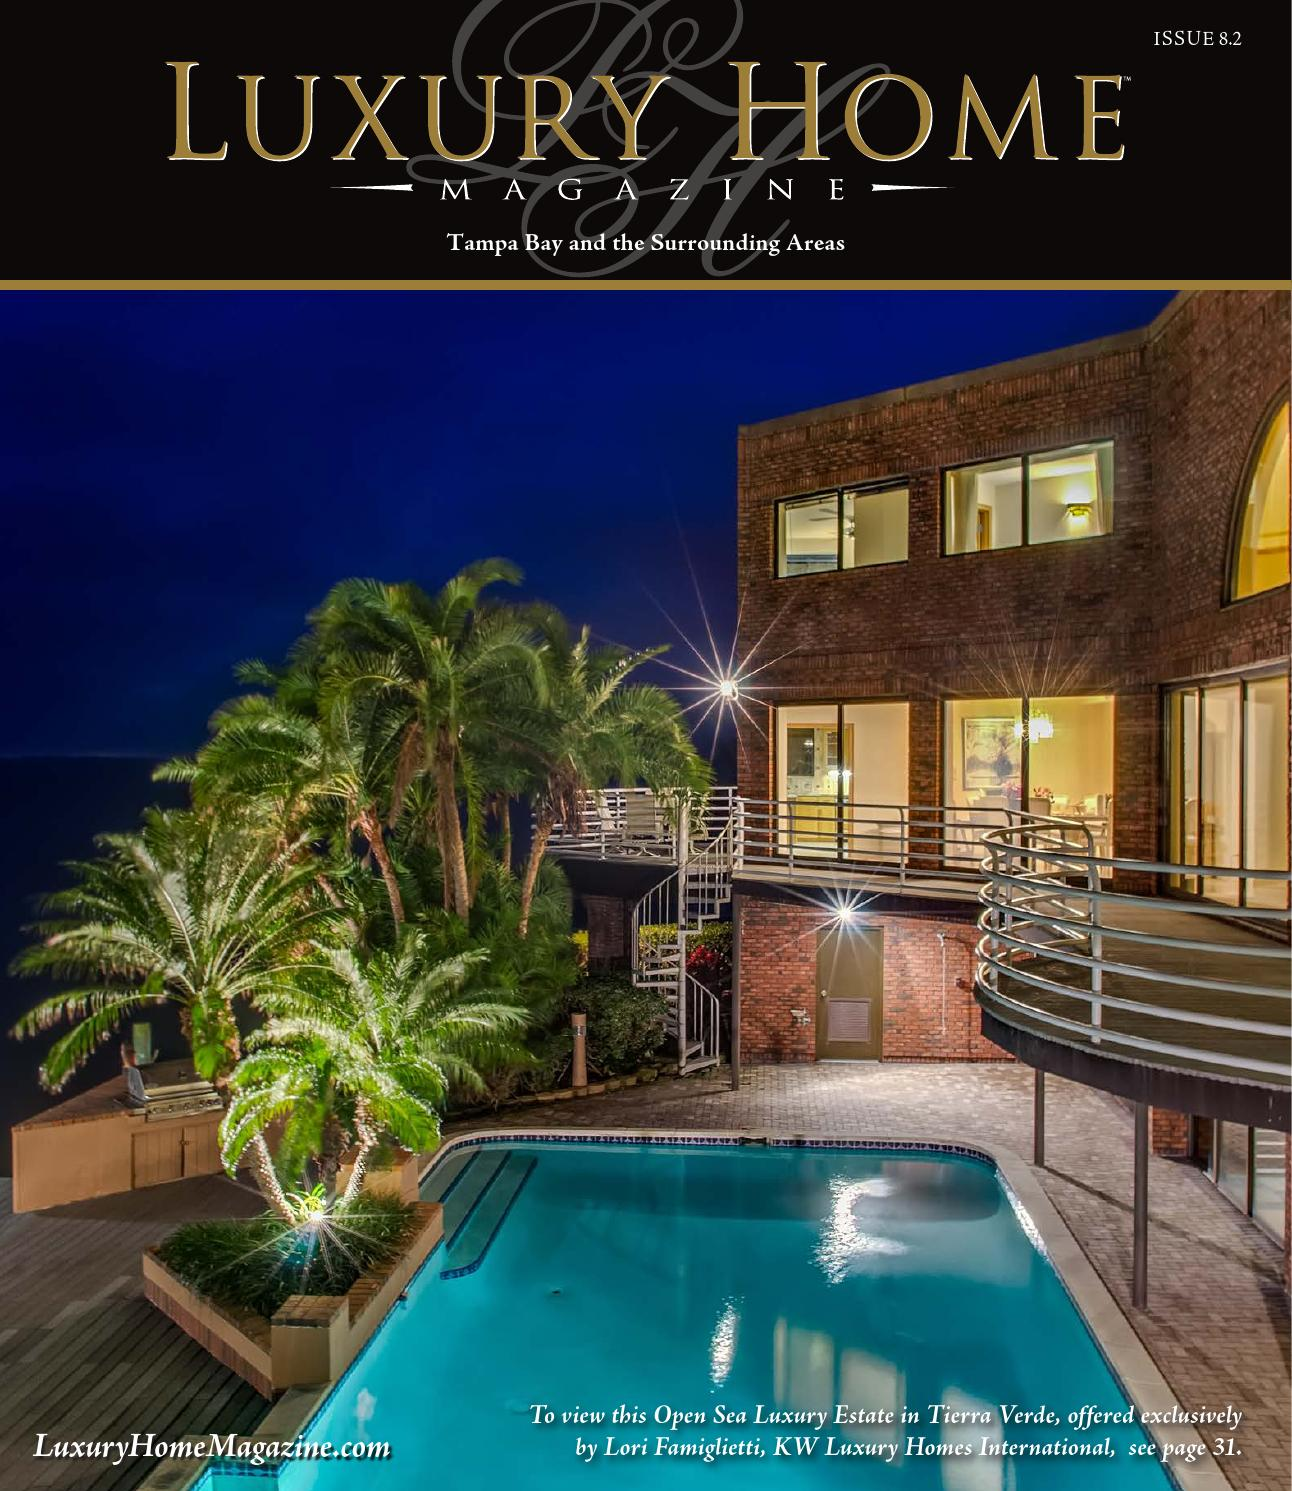 Mansion Luxury Pools With Waterfalls: Luxury Home Magazine Tampa Issue 8.2 By Luxury Home